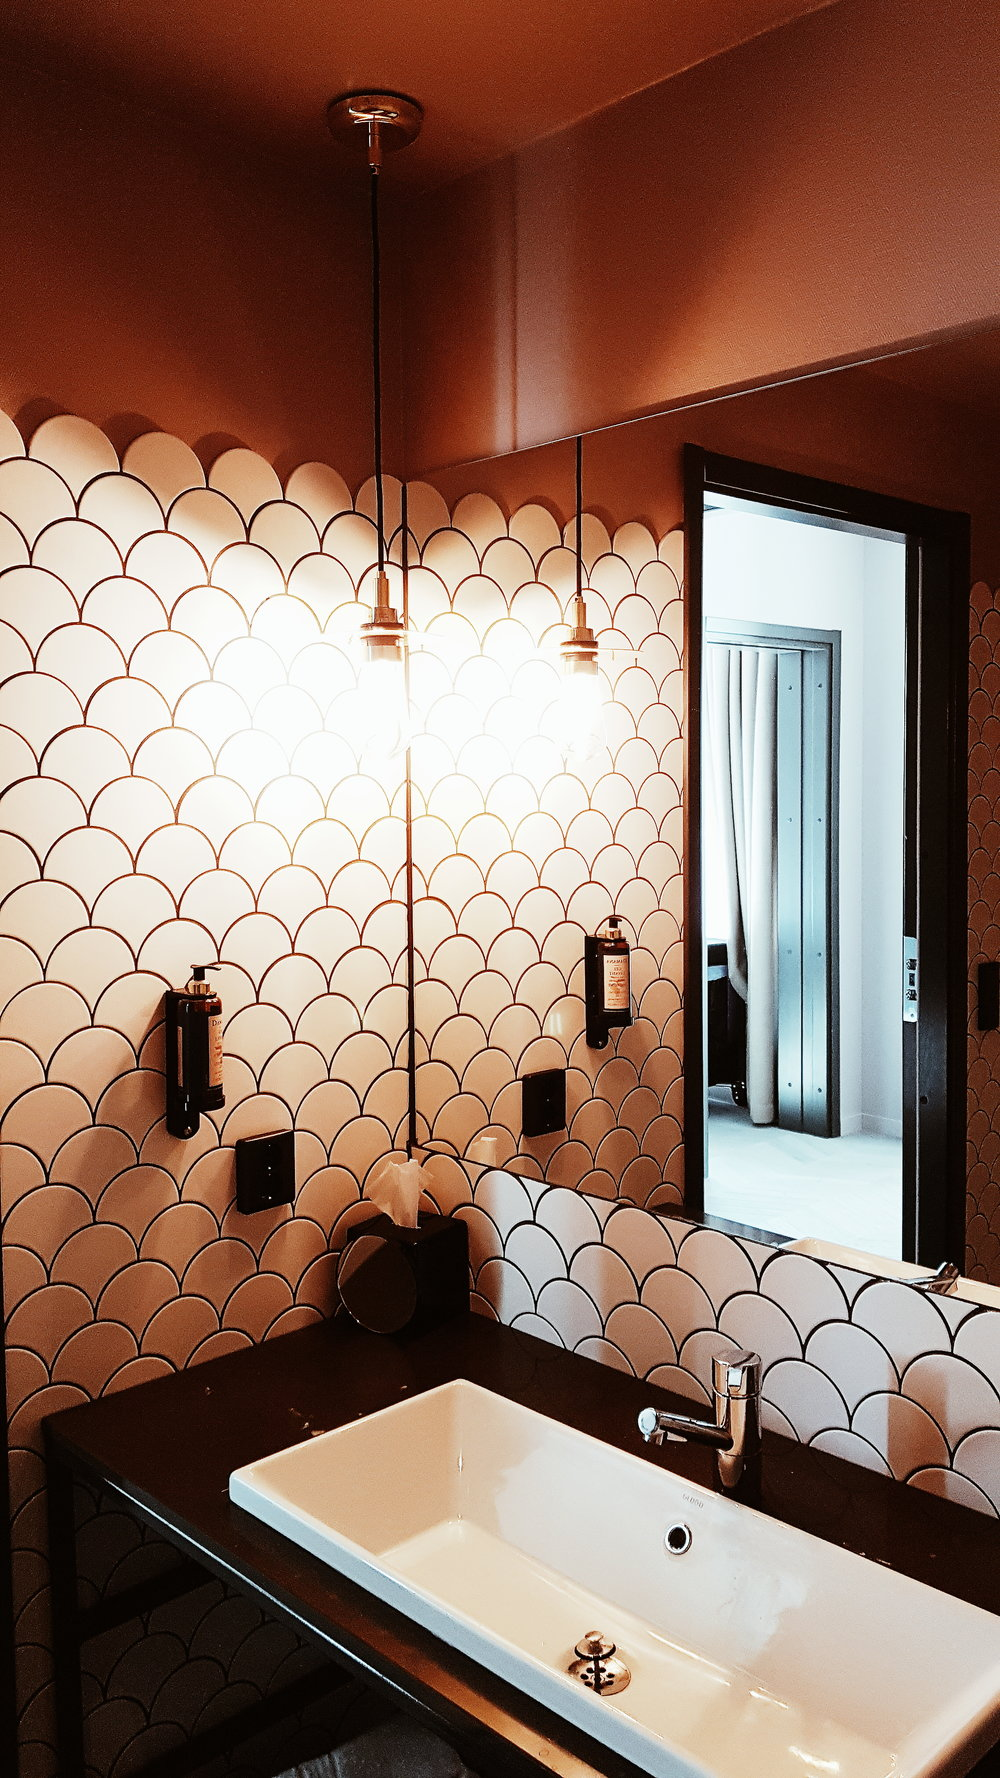 The bathroom made me go home wanting to scallop tile something!